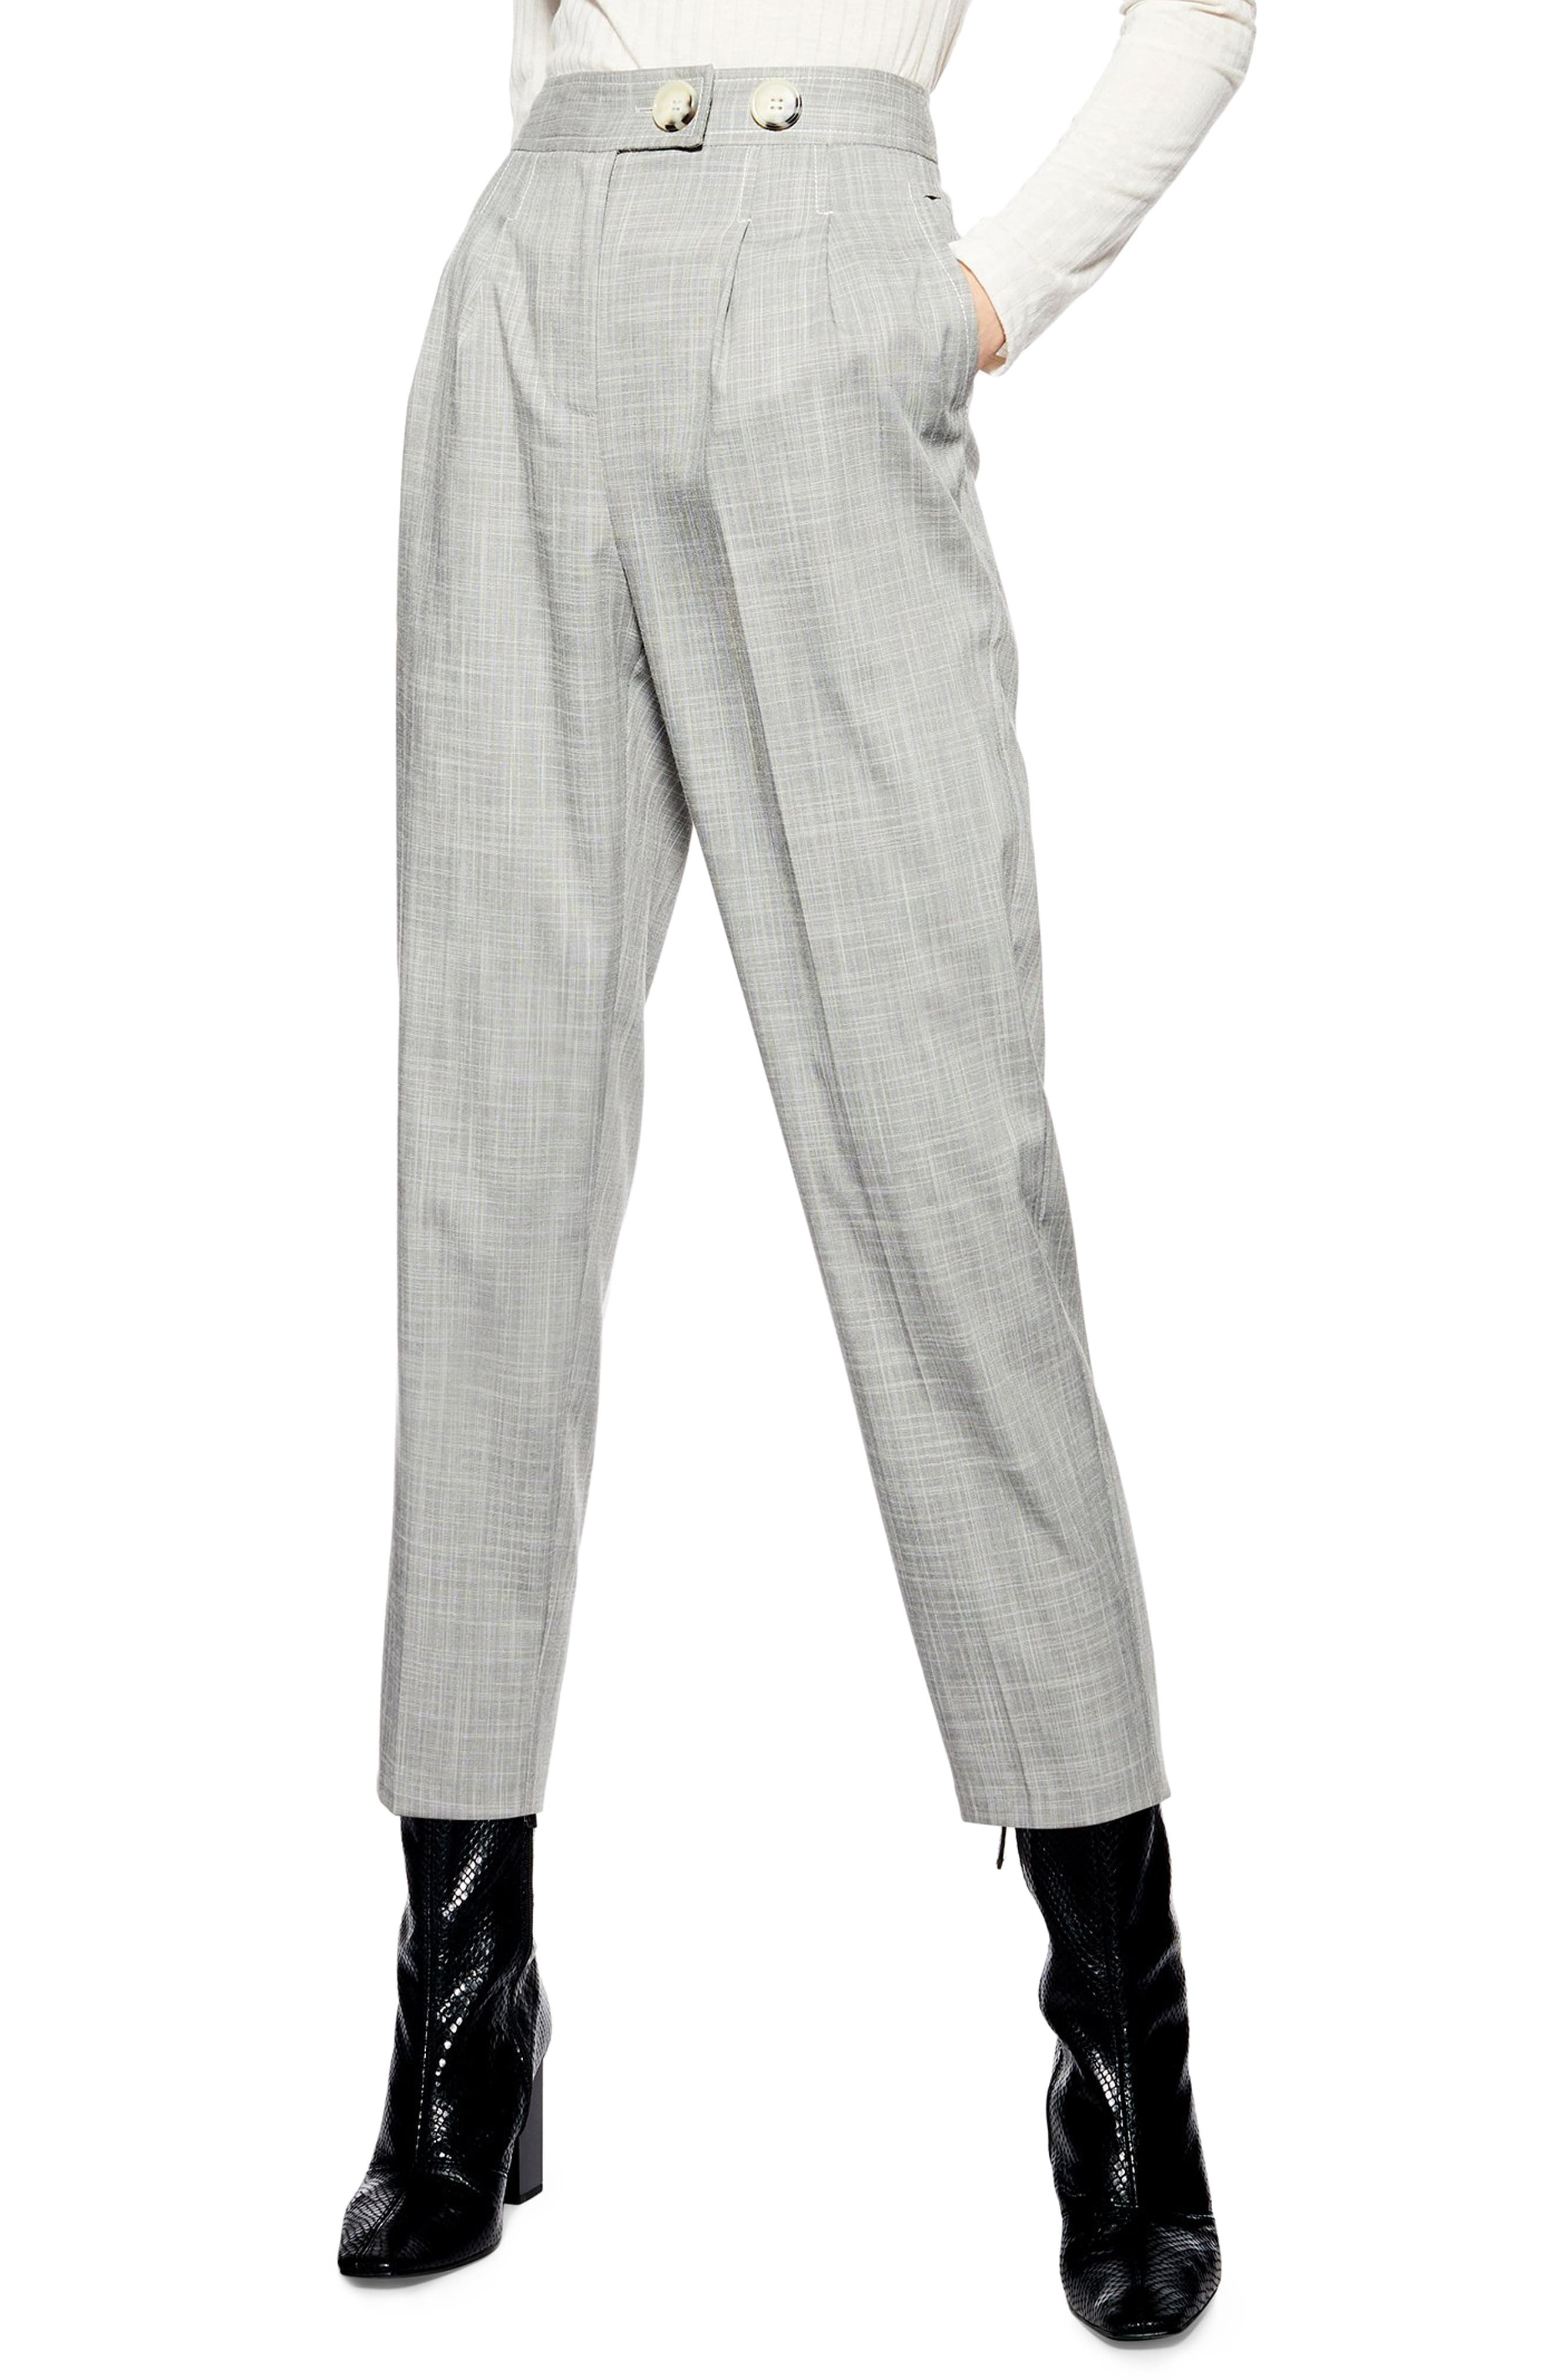 Tonic Tapered Trousers,                             Main thumbnail 1, color,                             GREY